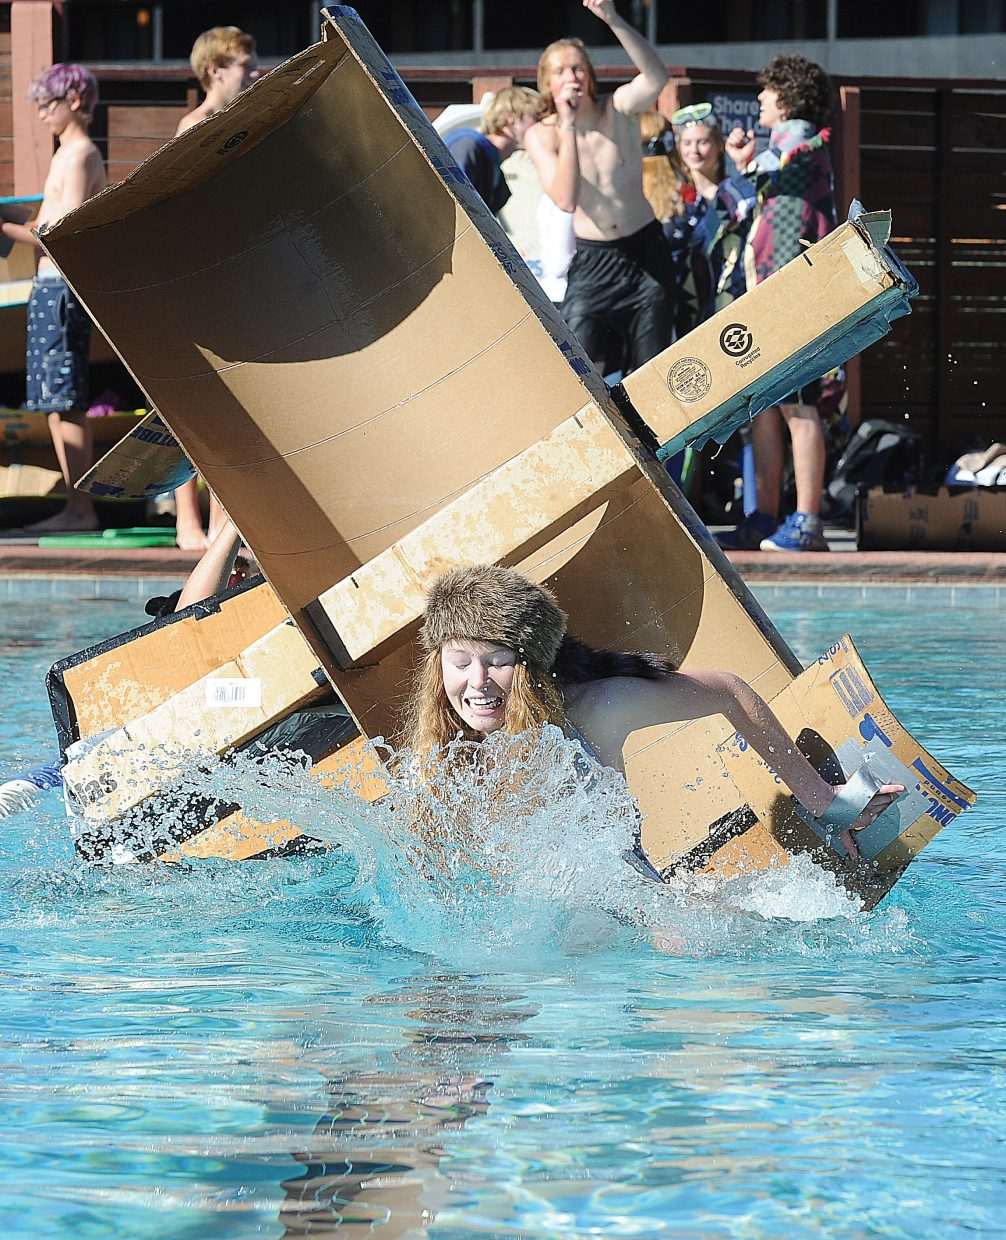 Shannon Ross takes a plunge at Old Town Hot Springs on Friday morning as part of the cardboard classic boat race.